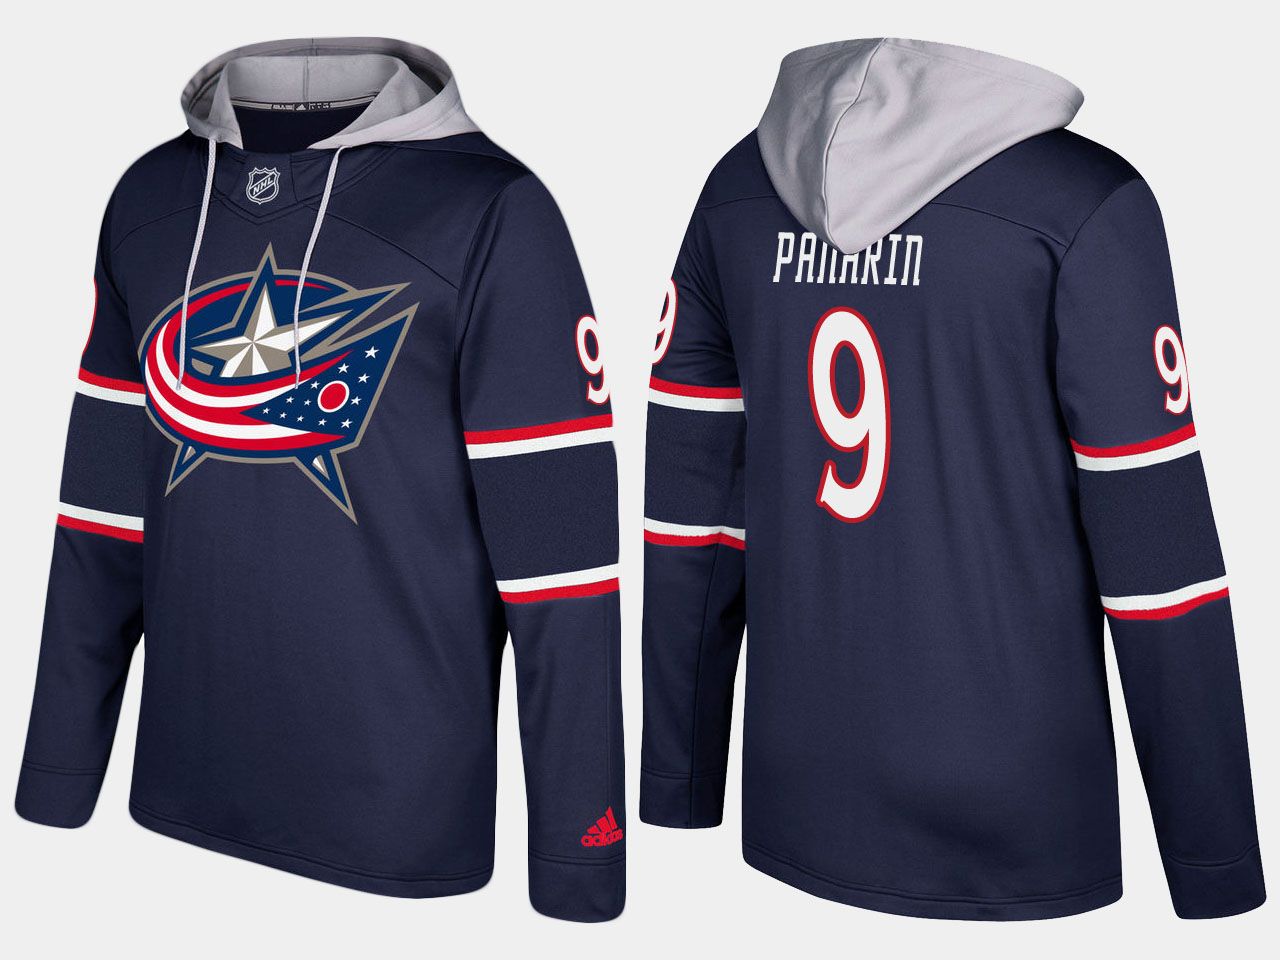 Men NHL Columbus blue jackets 9 artemi panarin navy blue hoodie